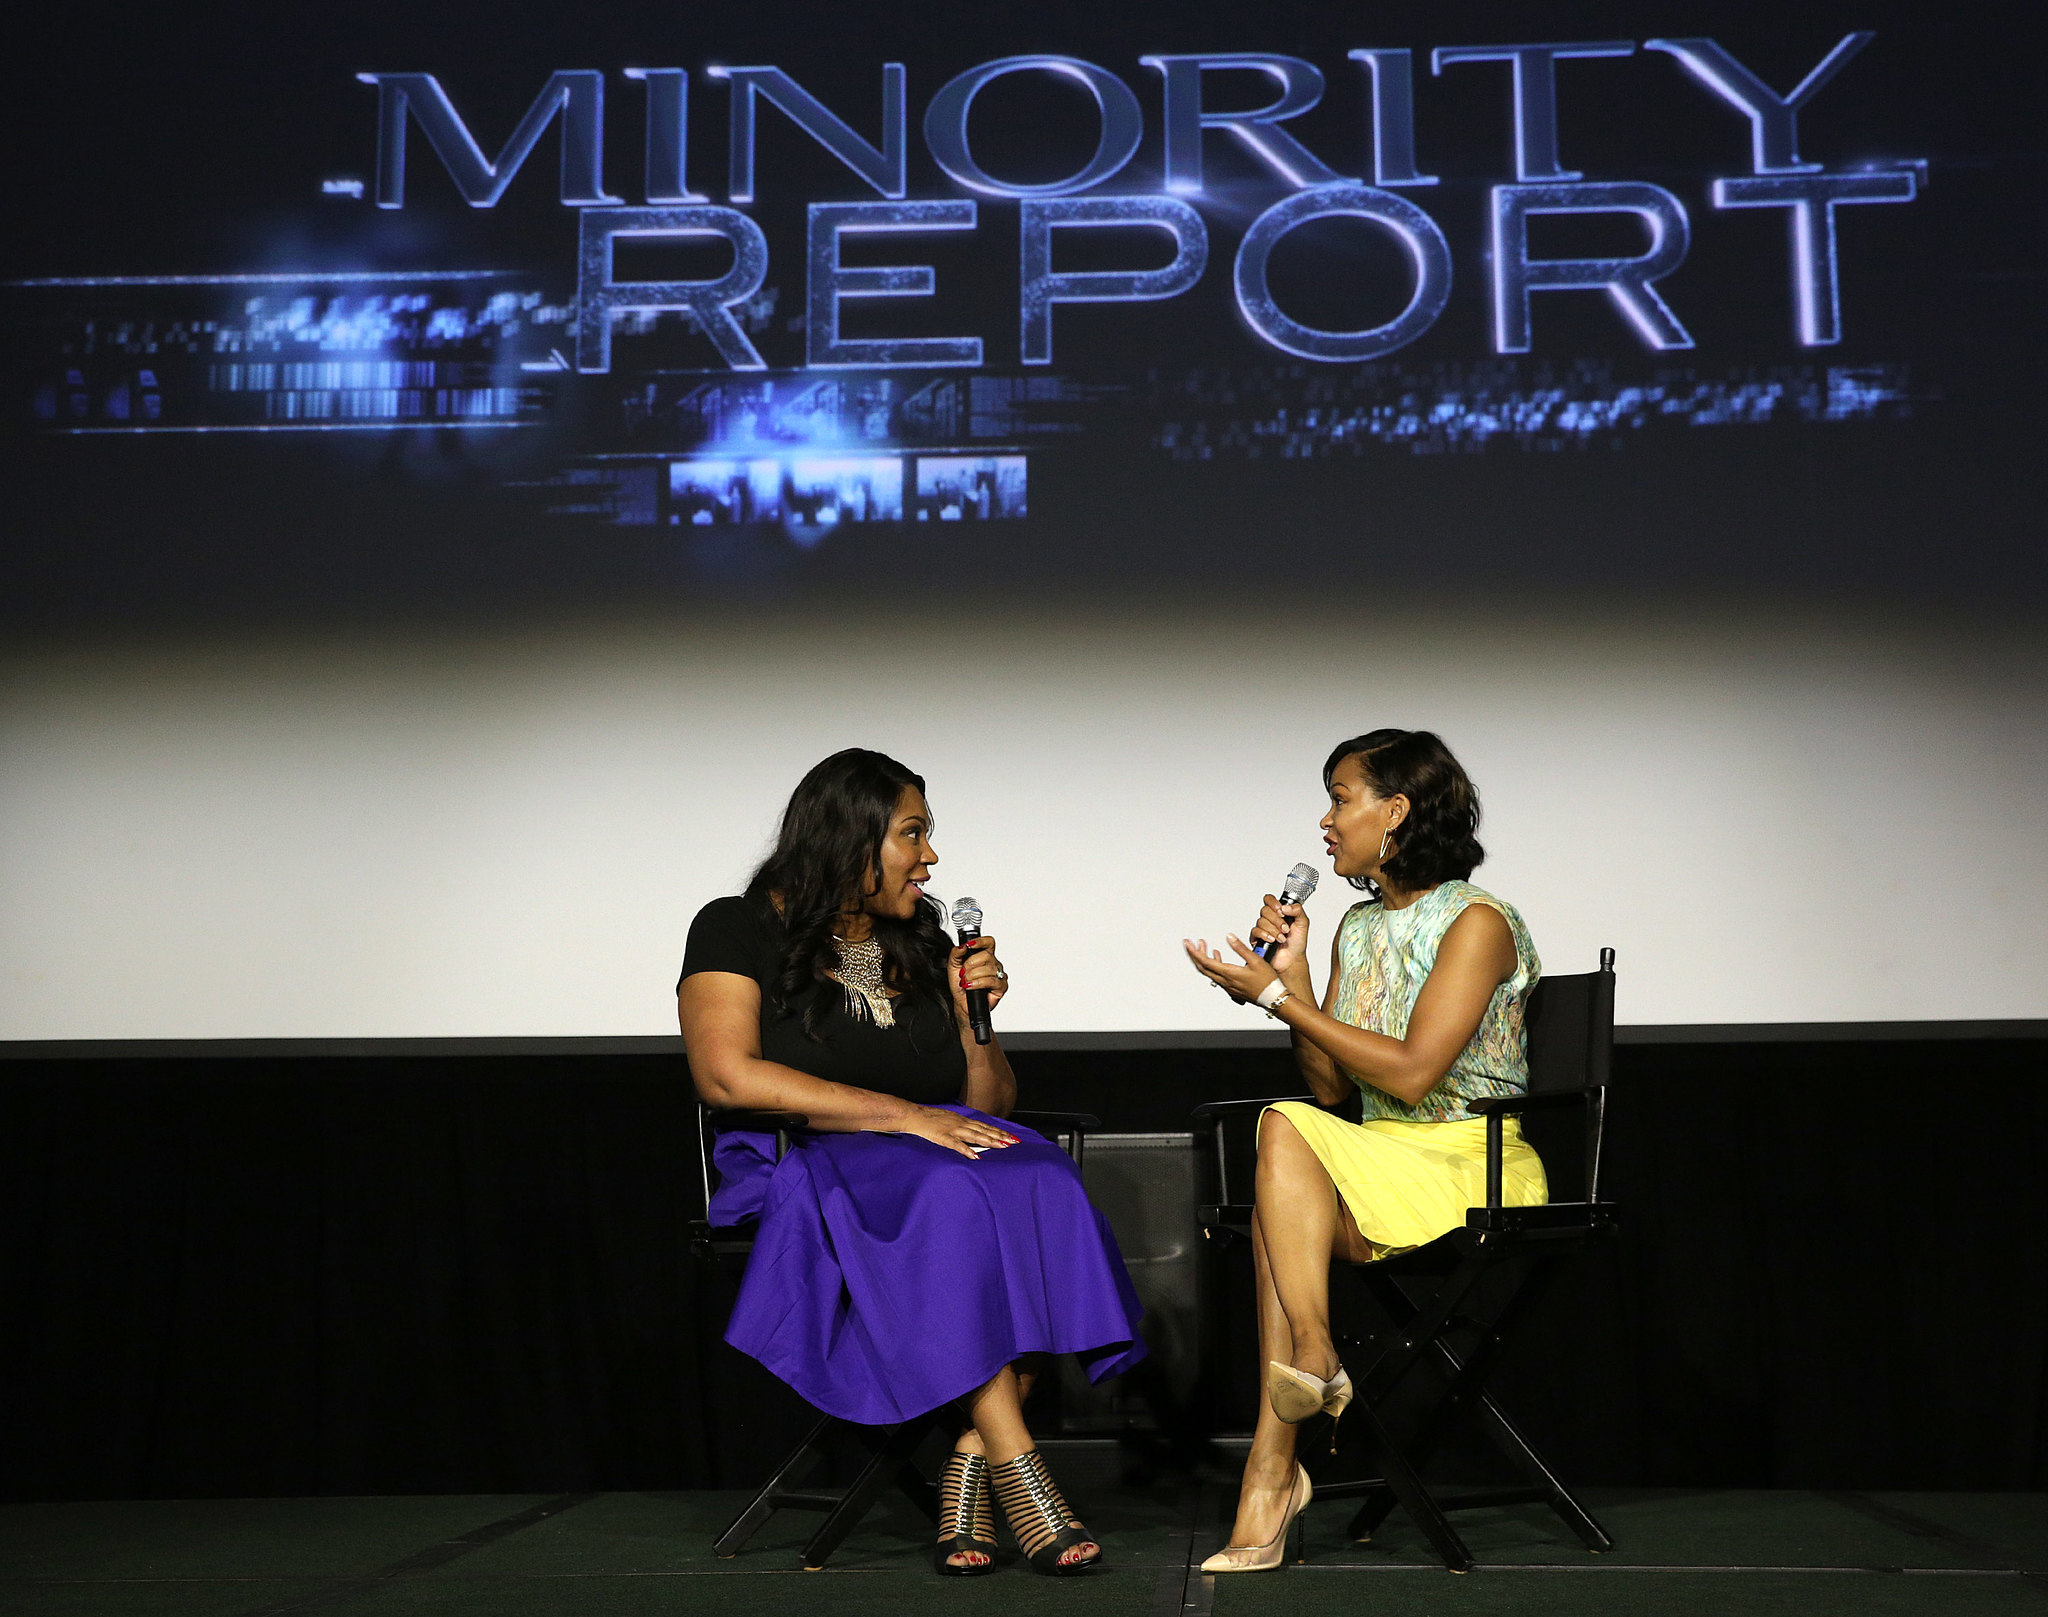 minority report essay meagan good and morris chestnut discuss her new fox show meagan good and morris chestnut discuss her new fox show minority report at the essence music